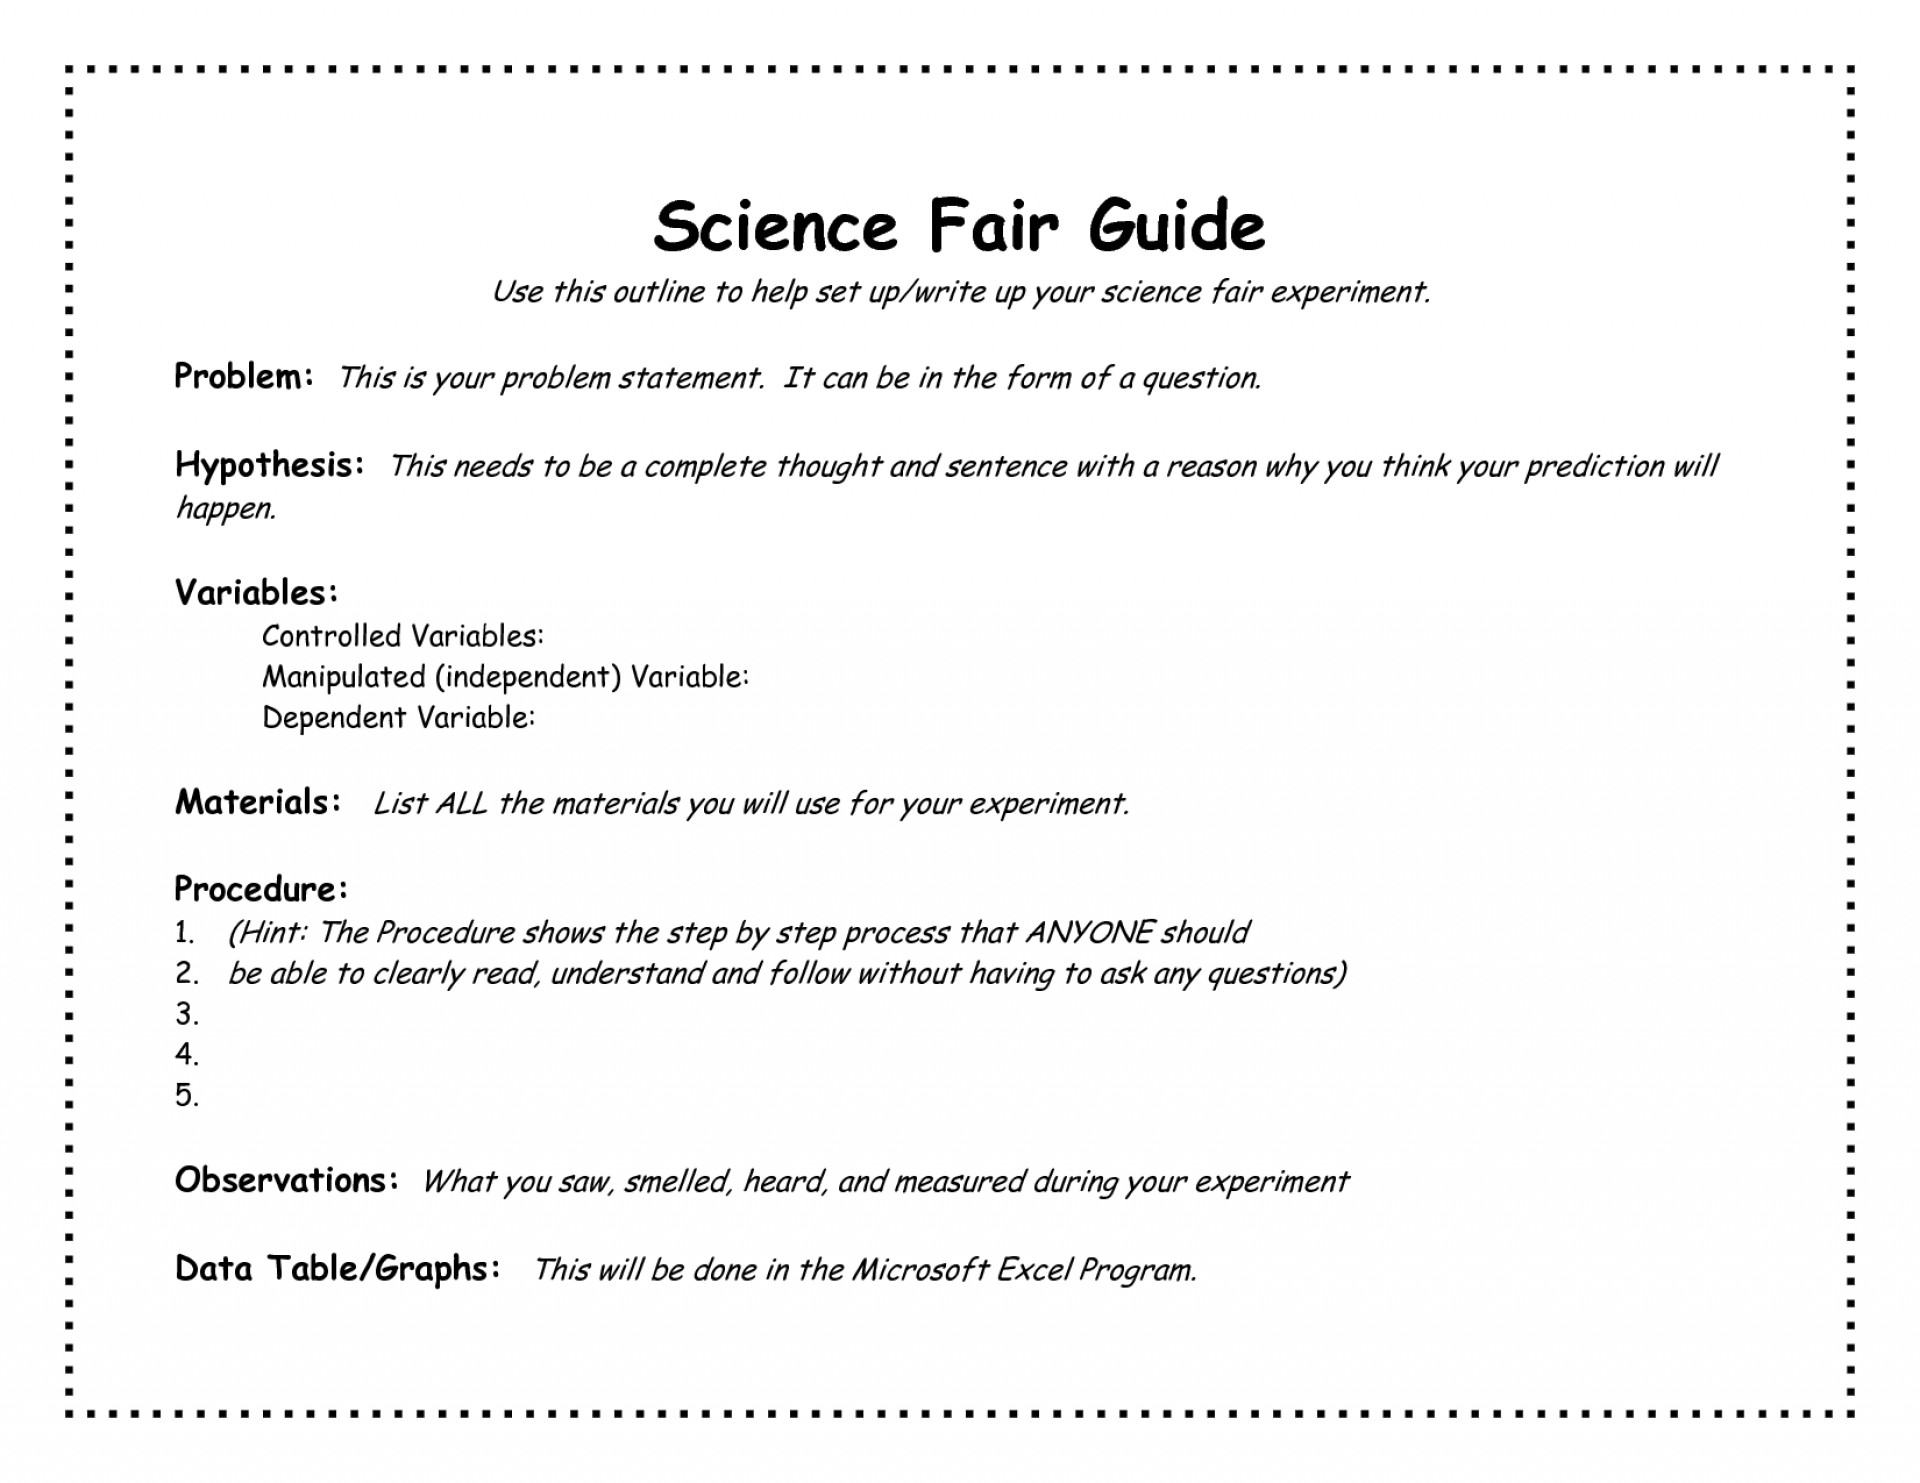 005 Science Fair Researchs Best Research Papers Paper Introduction Sample Example Apa Format 1920